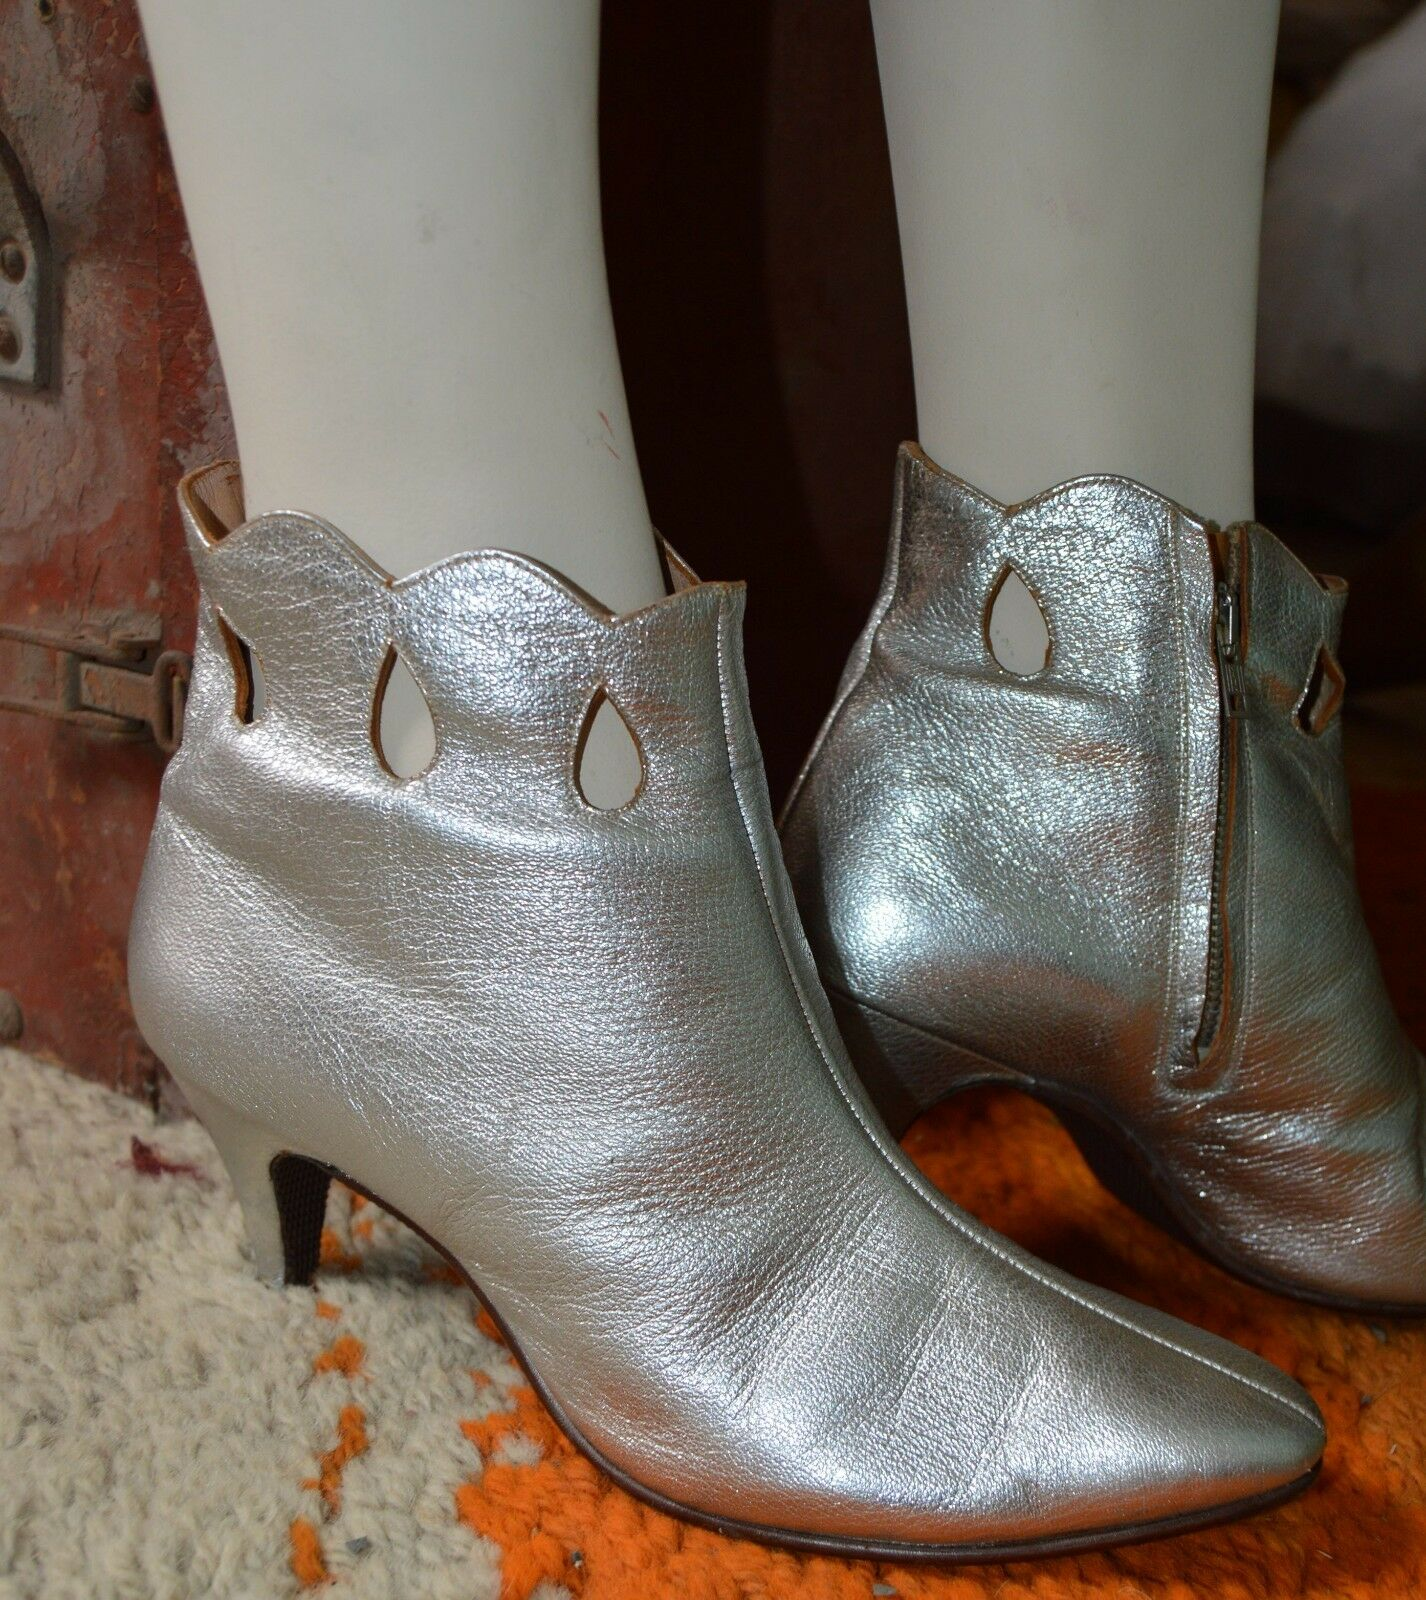 Ankle Boot Silver Ankle shoes Ankle Boots Boots 70er True Vintage 70s Party